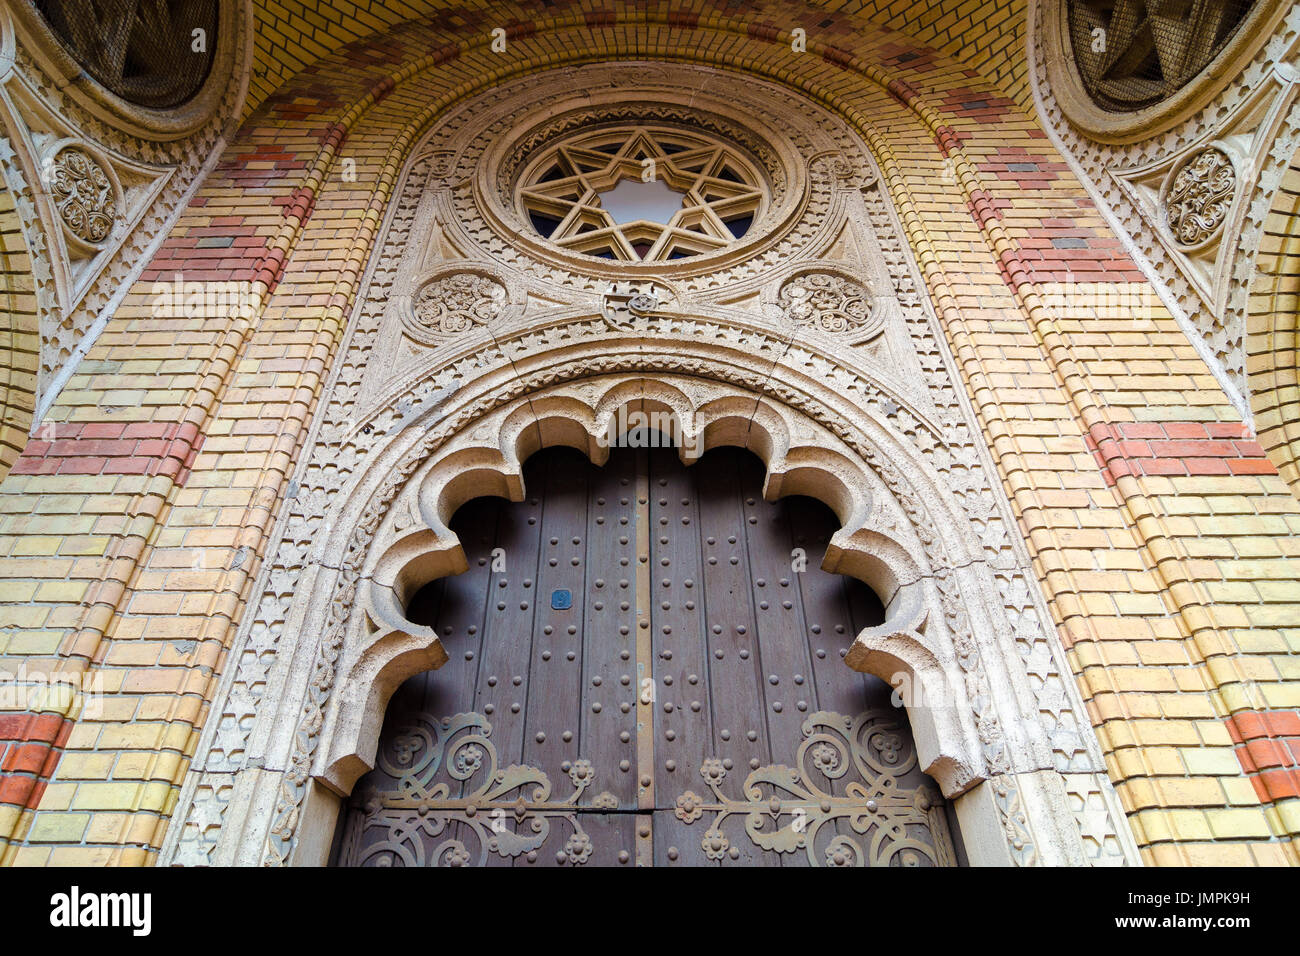 BUDAPEST, HUNGARY - FEBRUARY 21, 2016: Exterior of the Great Synagogue in Dohany Street. The Dohany Street Synagogue is the largest synagogue in Europ - Stock Image